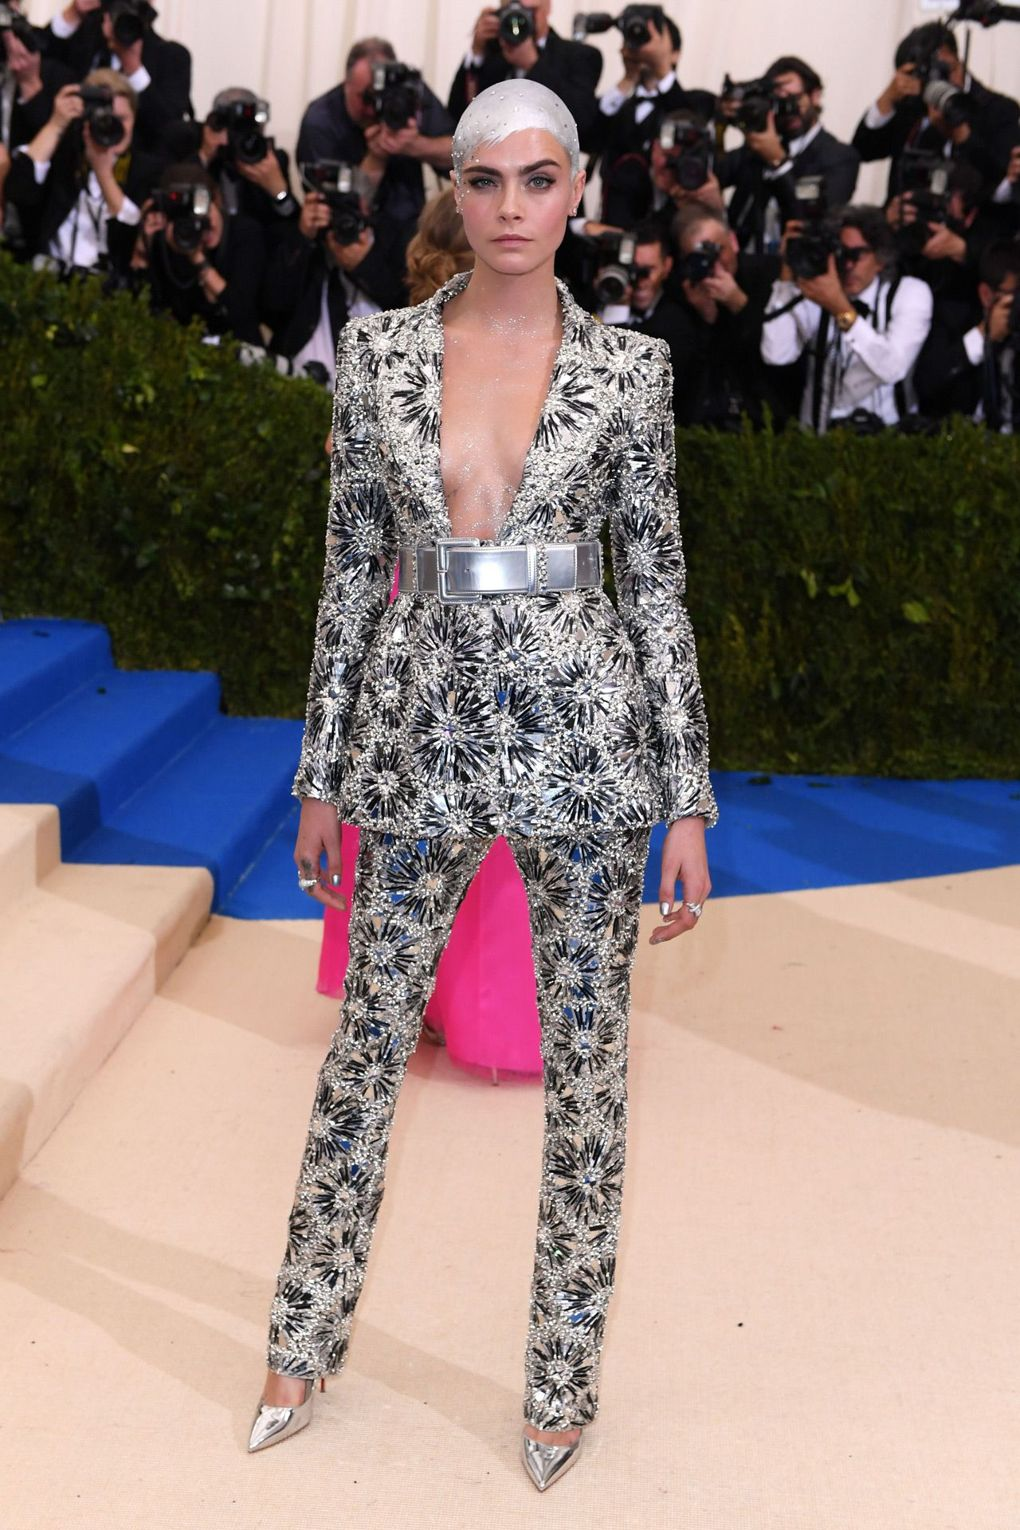 Cara Delevingne in a silver Chanel suit.